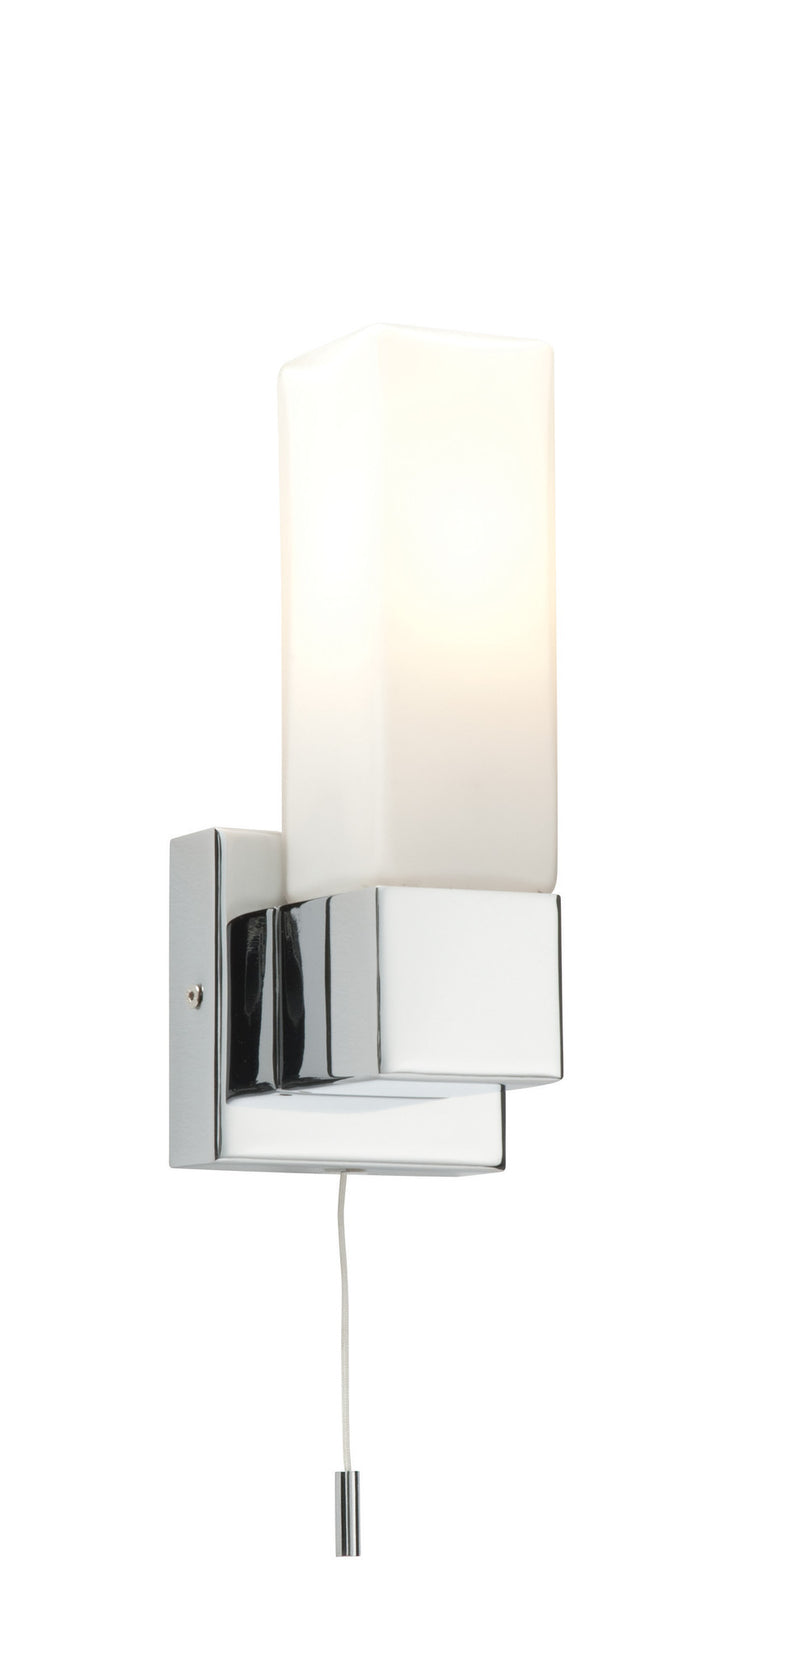 Square Single Wall Light - bathroomlightsdirect